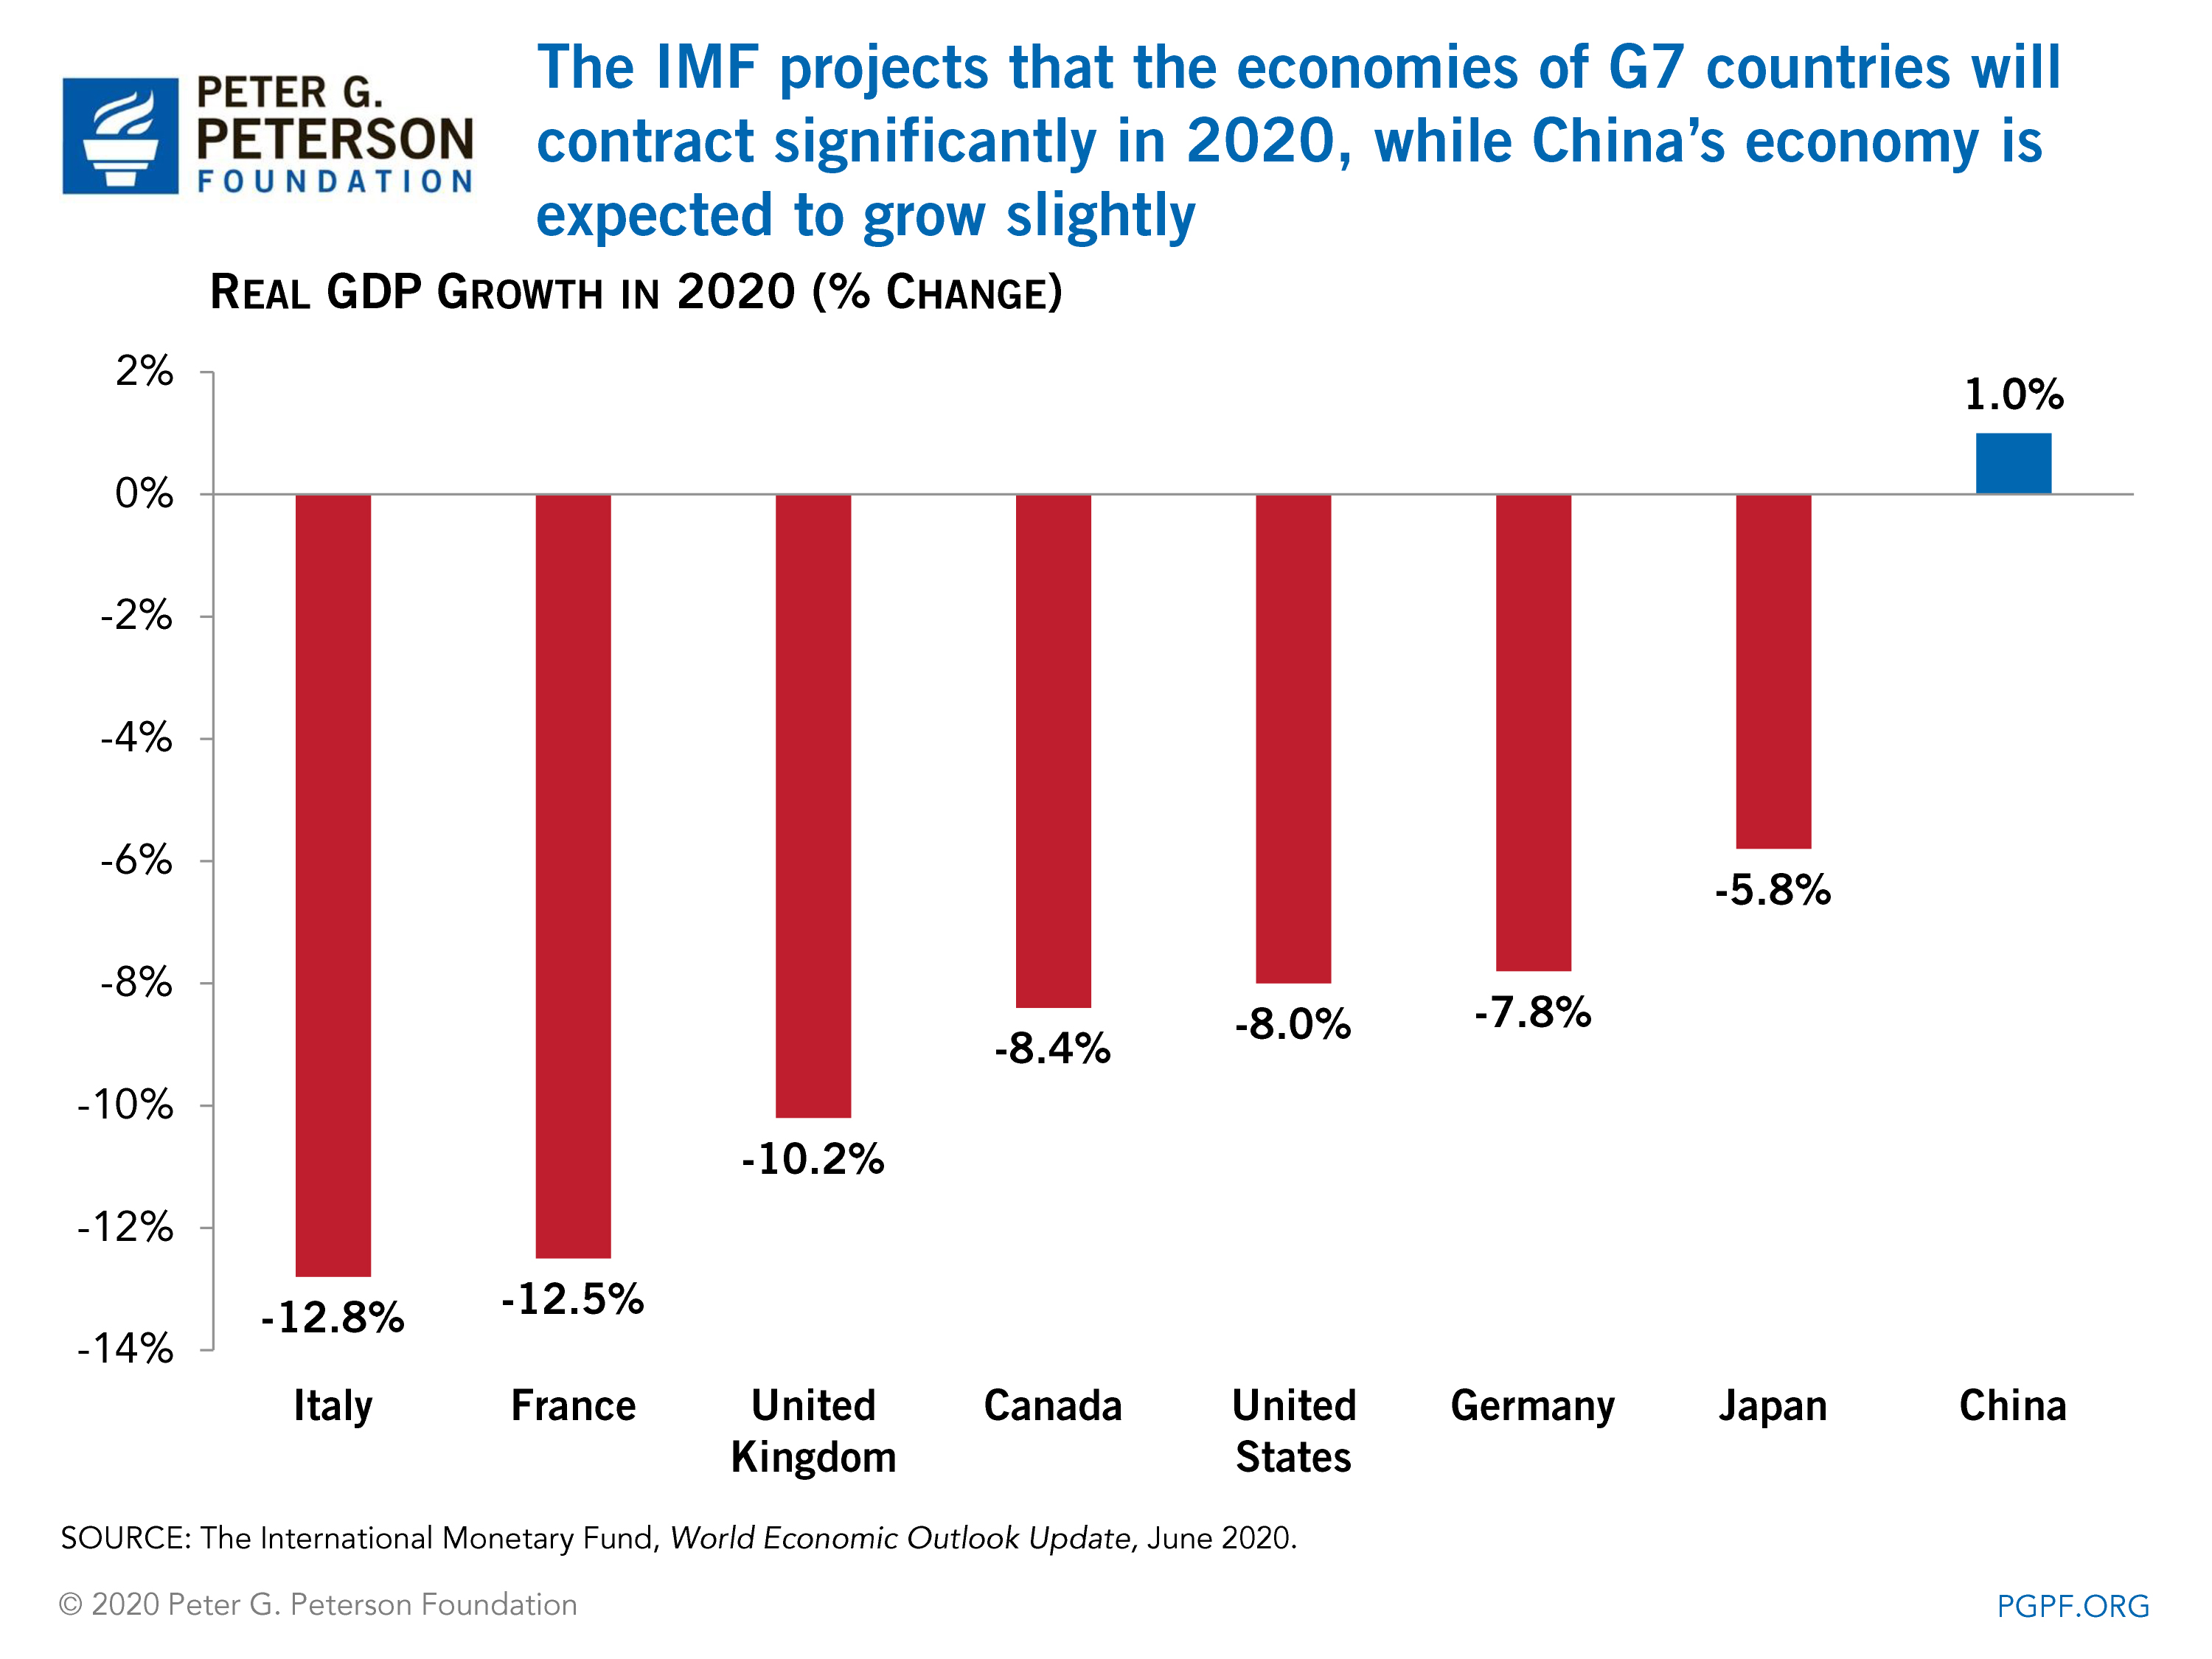 The IMF projects that the economies of G7 countries will contract significantly in 2020, while China's economy is expected to grow slightly